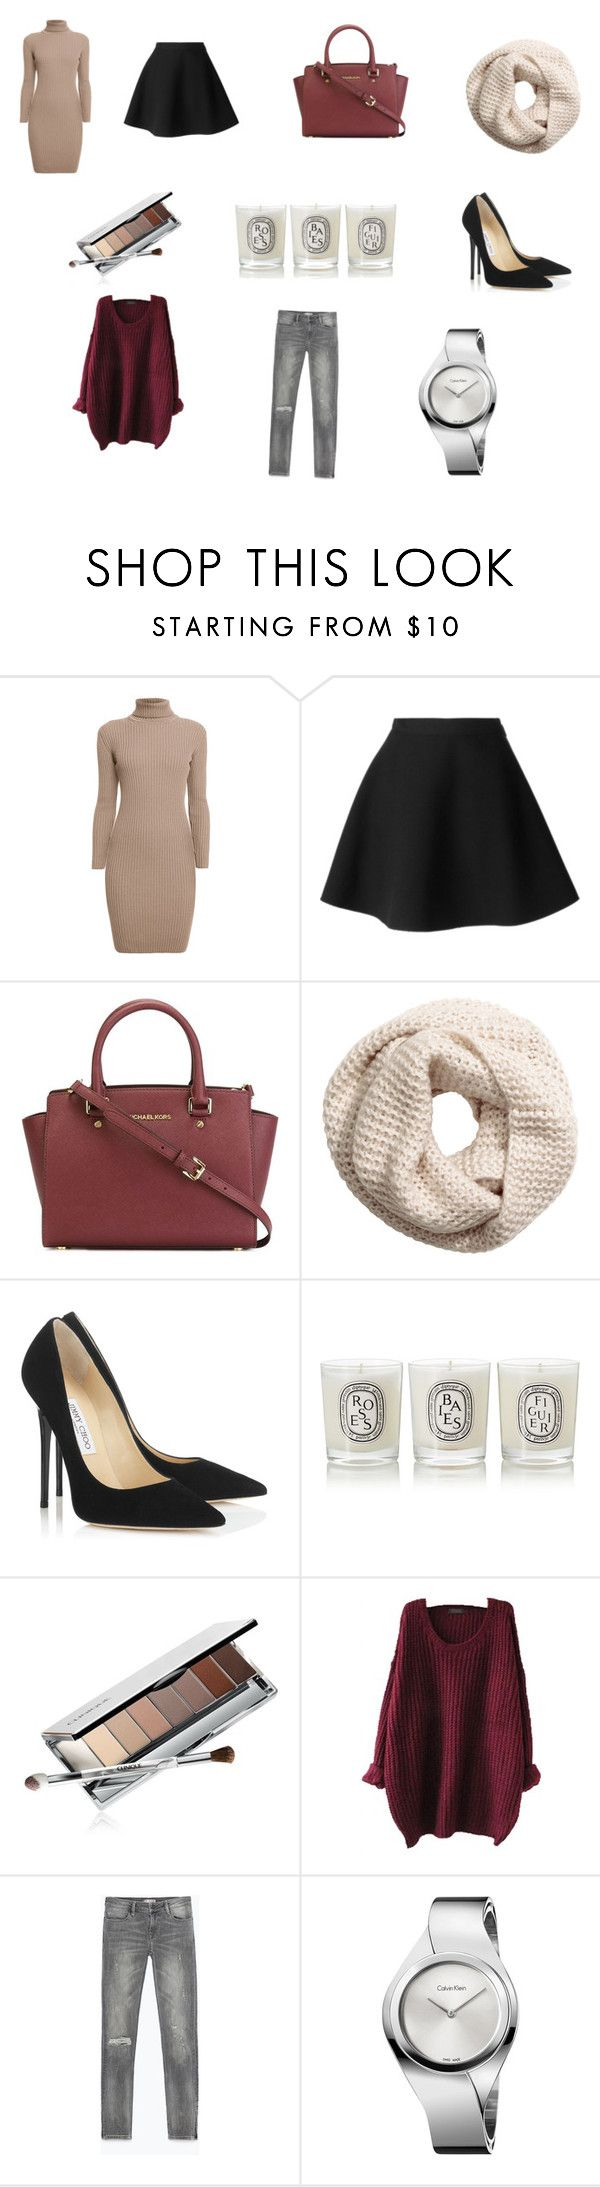 """""""Everyday stuff"""" by mousouza on Polyvore featuring Rumour London, MSGM, MICHAEL Michael Kors, H&M, Jimmy Choo, Diptyque, Clinique, Zara and Calvin Klein"""